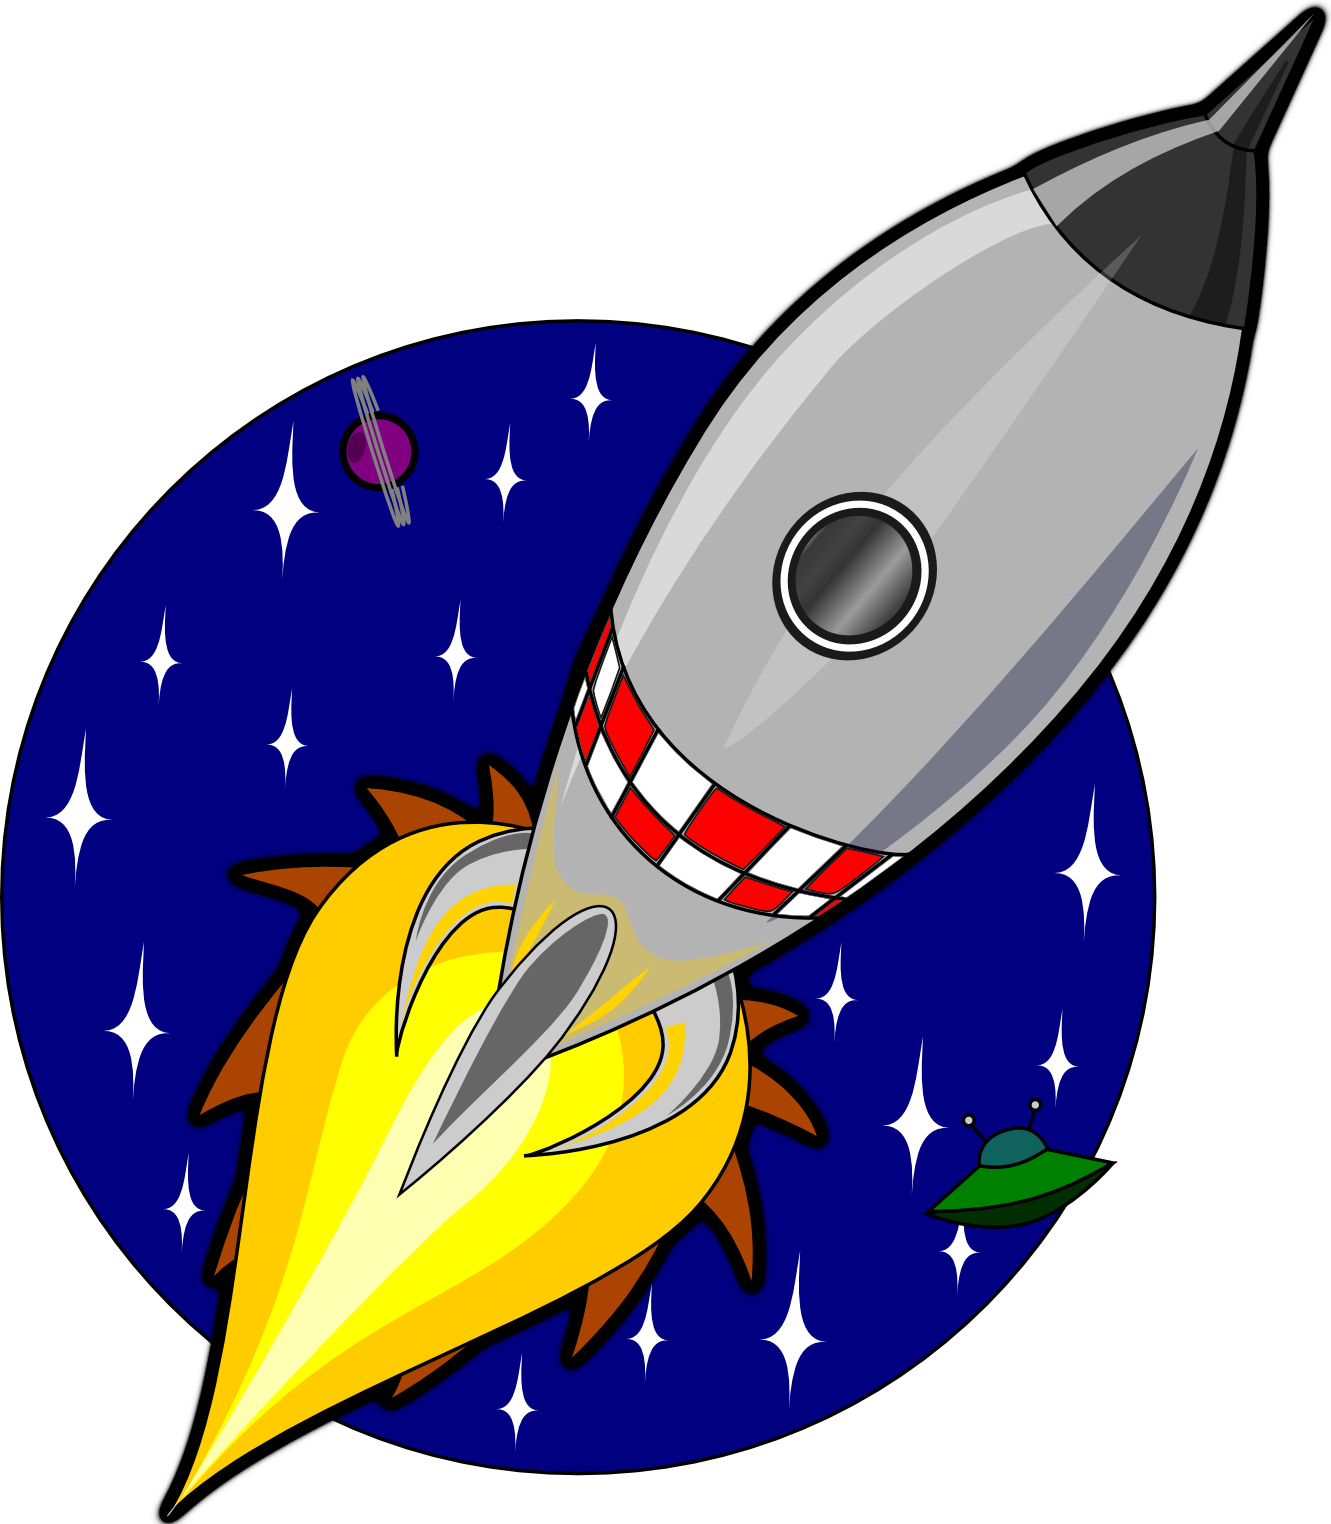 1331x1524 Cartoon Rocket